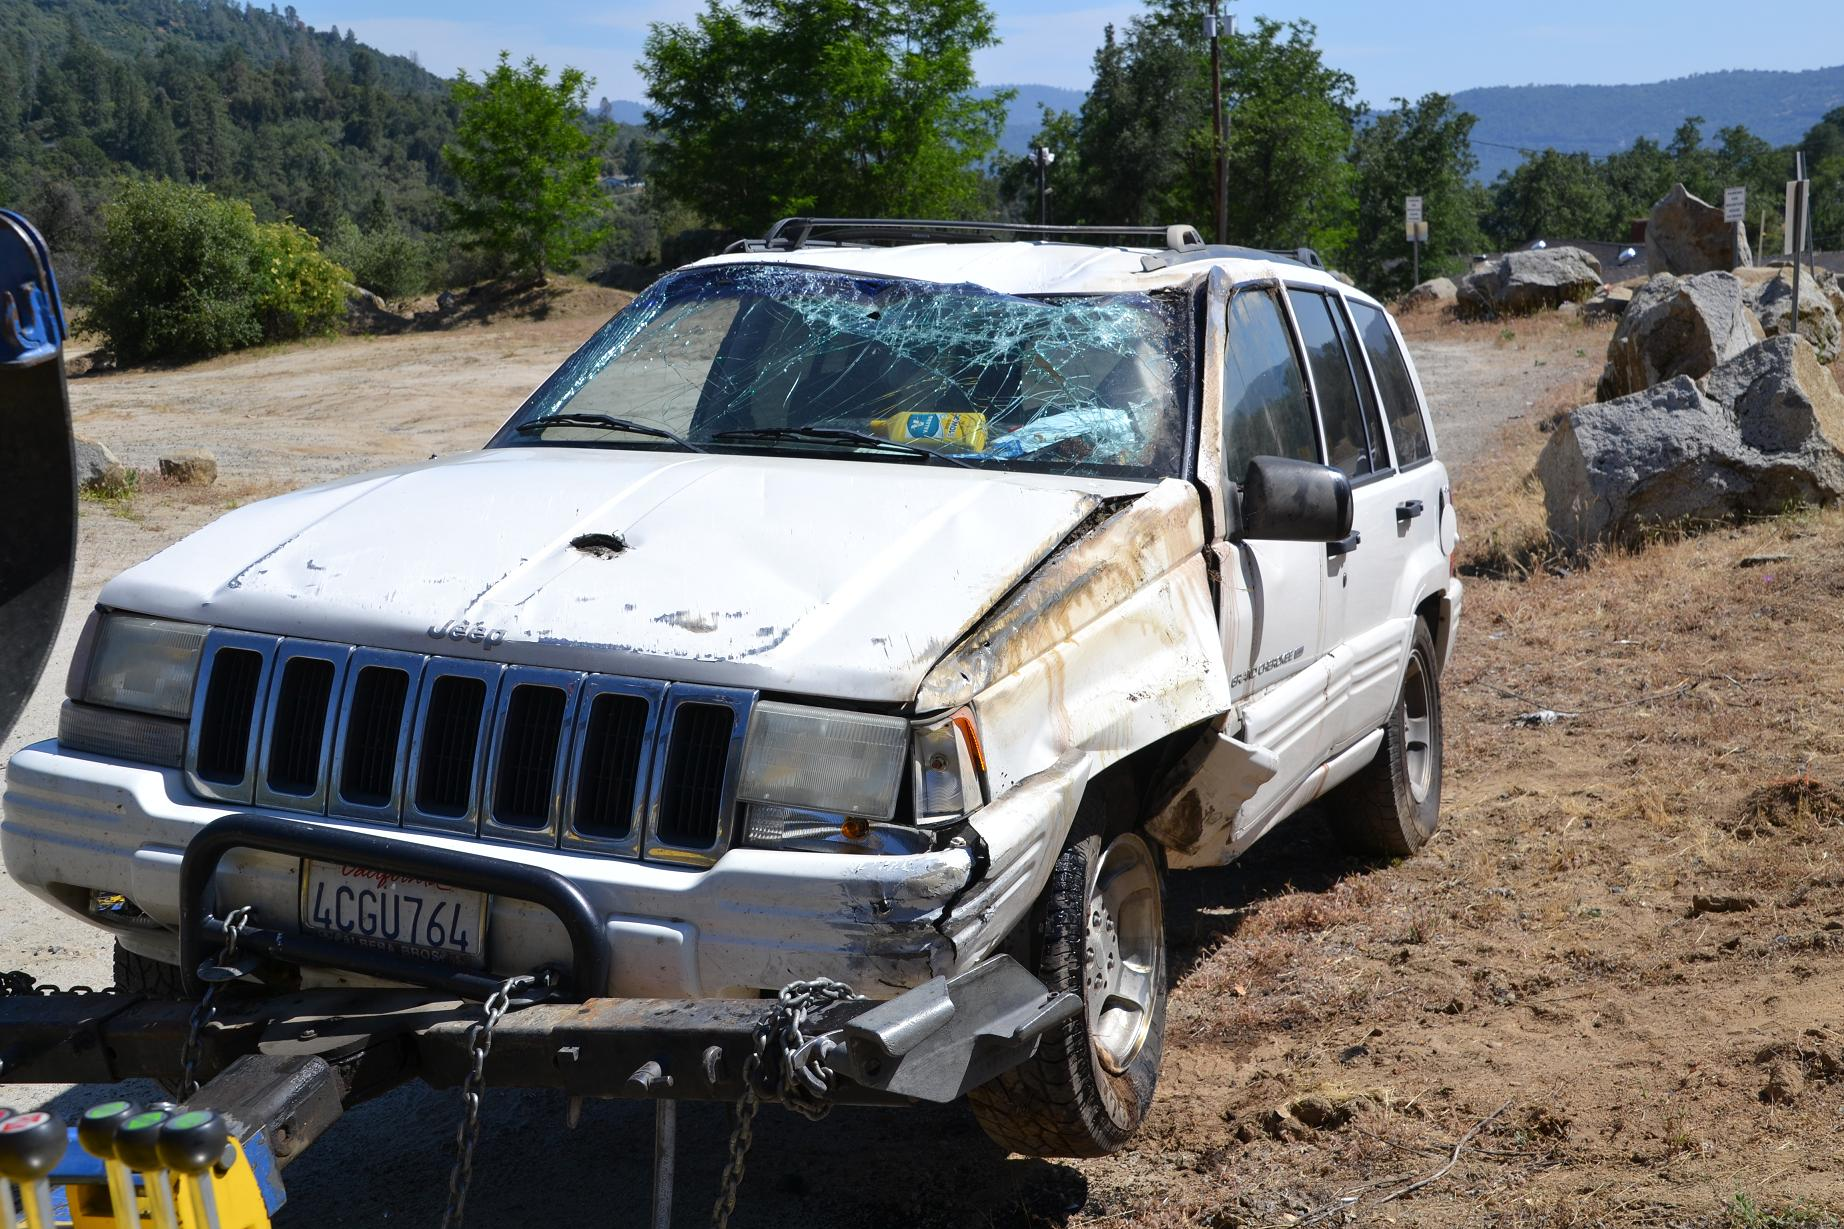 Cheryl's Jeep Grand Cherokee after the accident